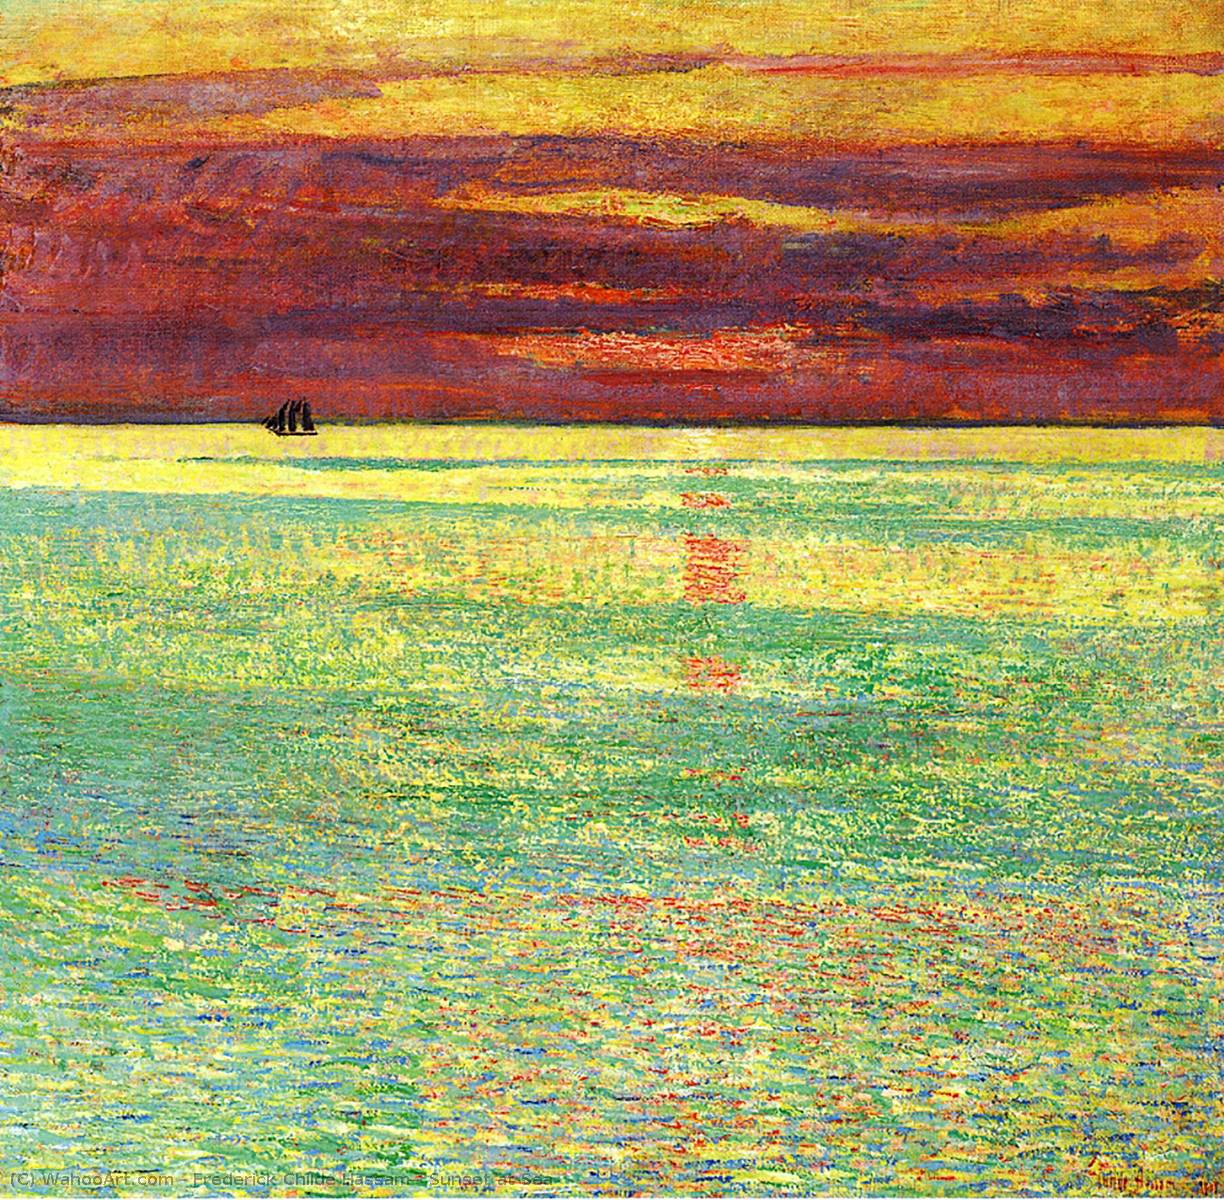 Order Paintings Reproductions : Sunset at Sea by Frederick Childe Hassam | Most-Famous-Paintings.com